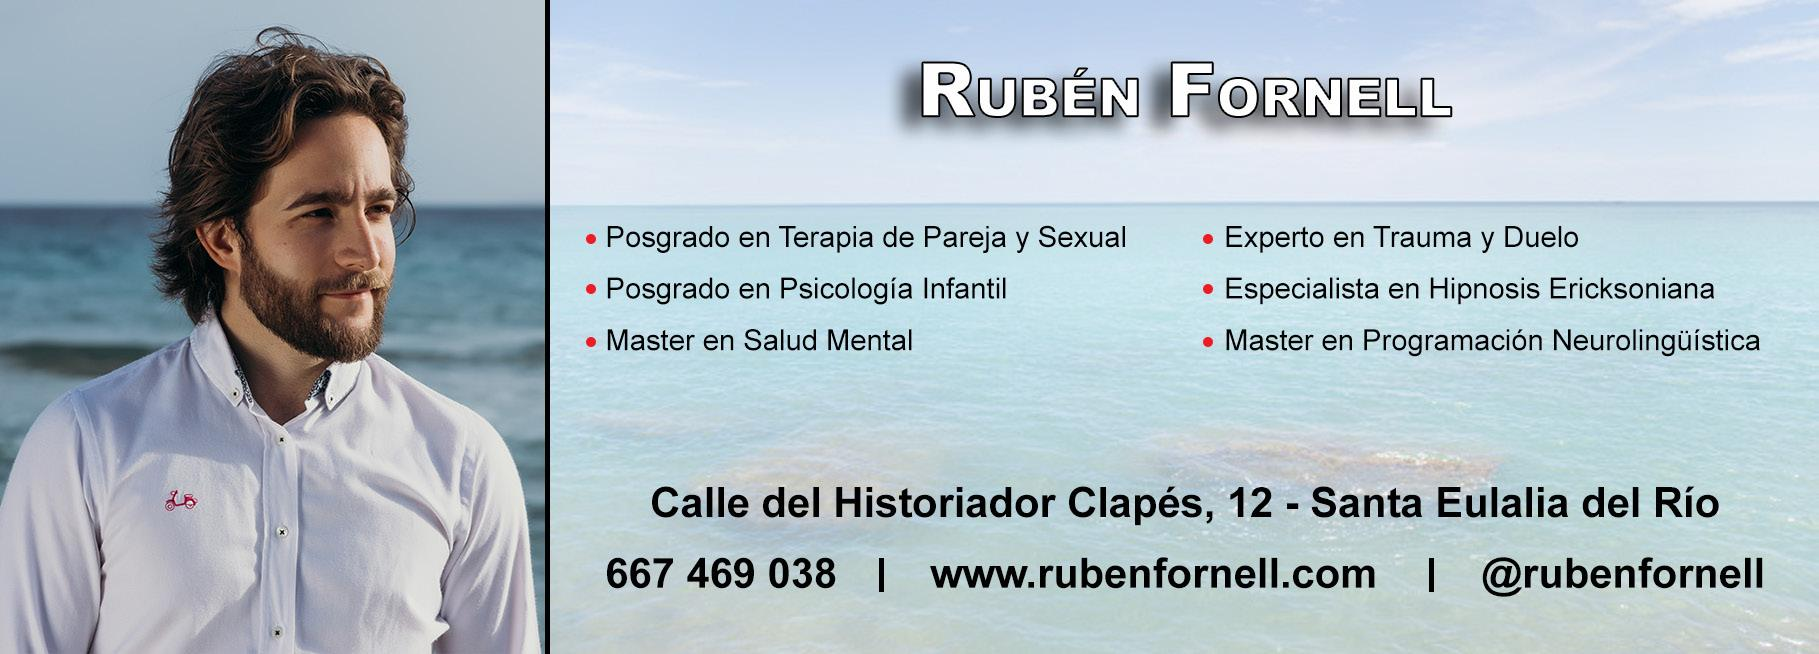 Page 14 of Rubén Fornell